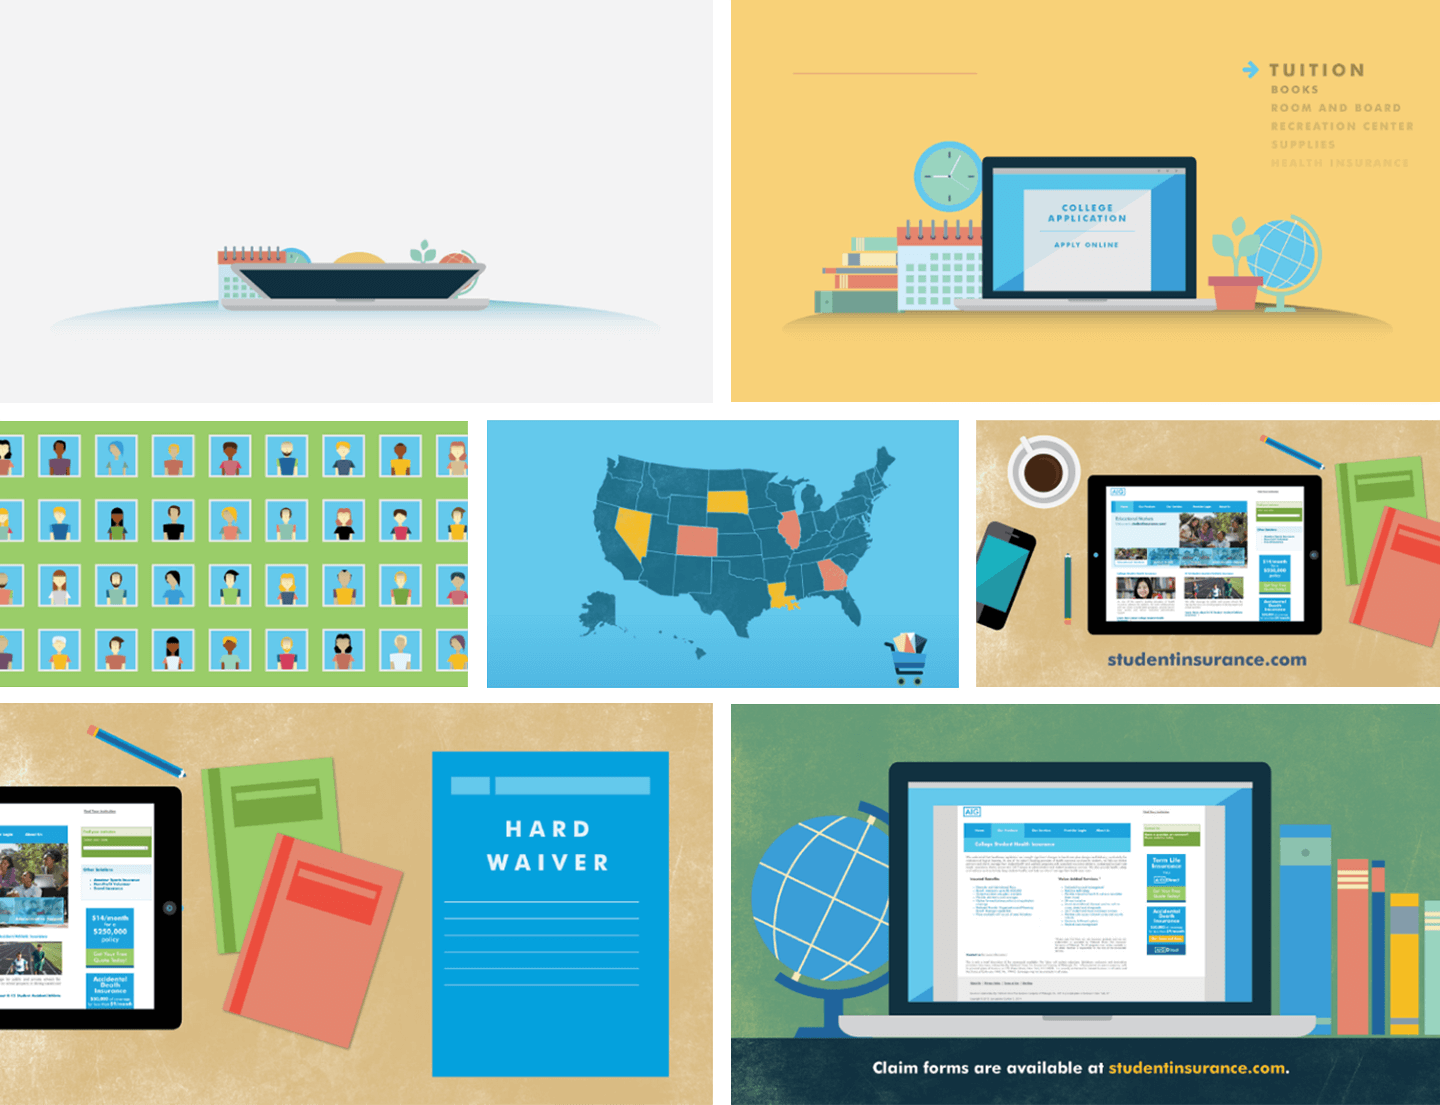 Collage of illustration blocks with books, laptops, and a map of the USA